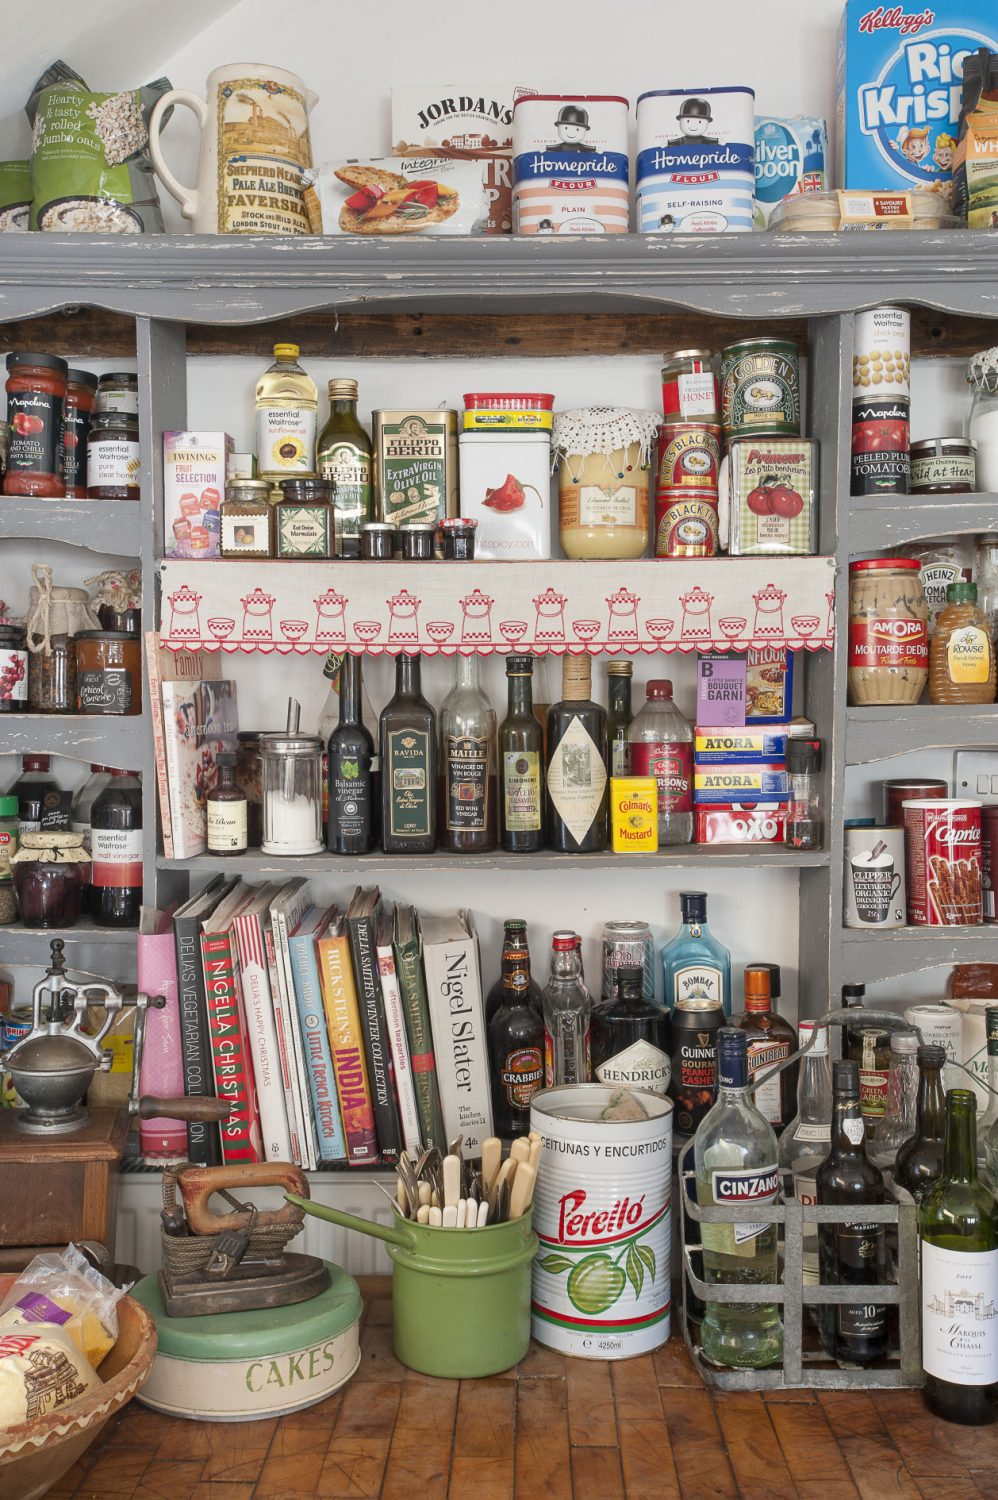 generously stocked shelves ensure that ingredients and cookbooks are always conveniently to hand